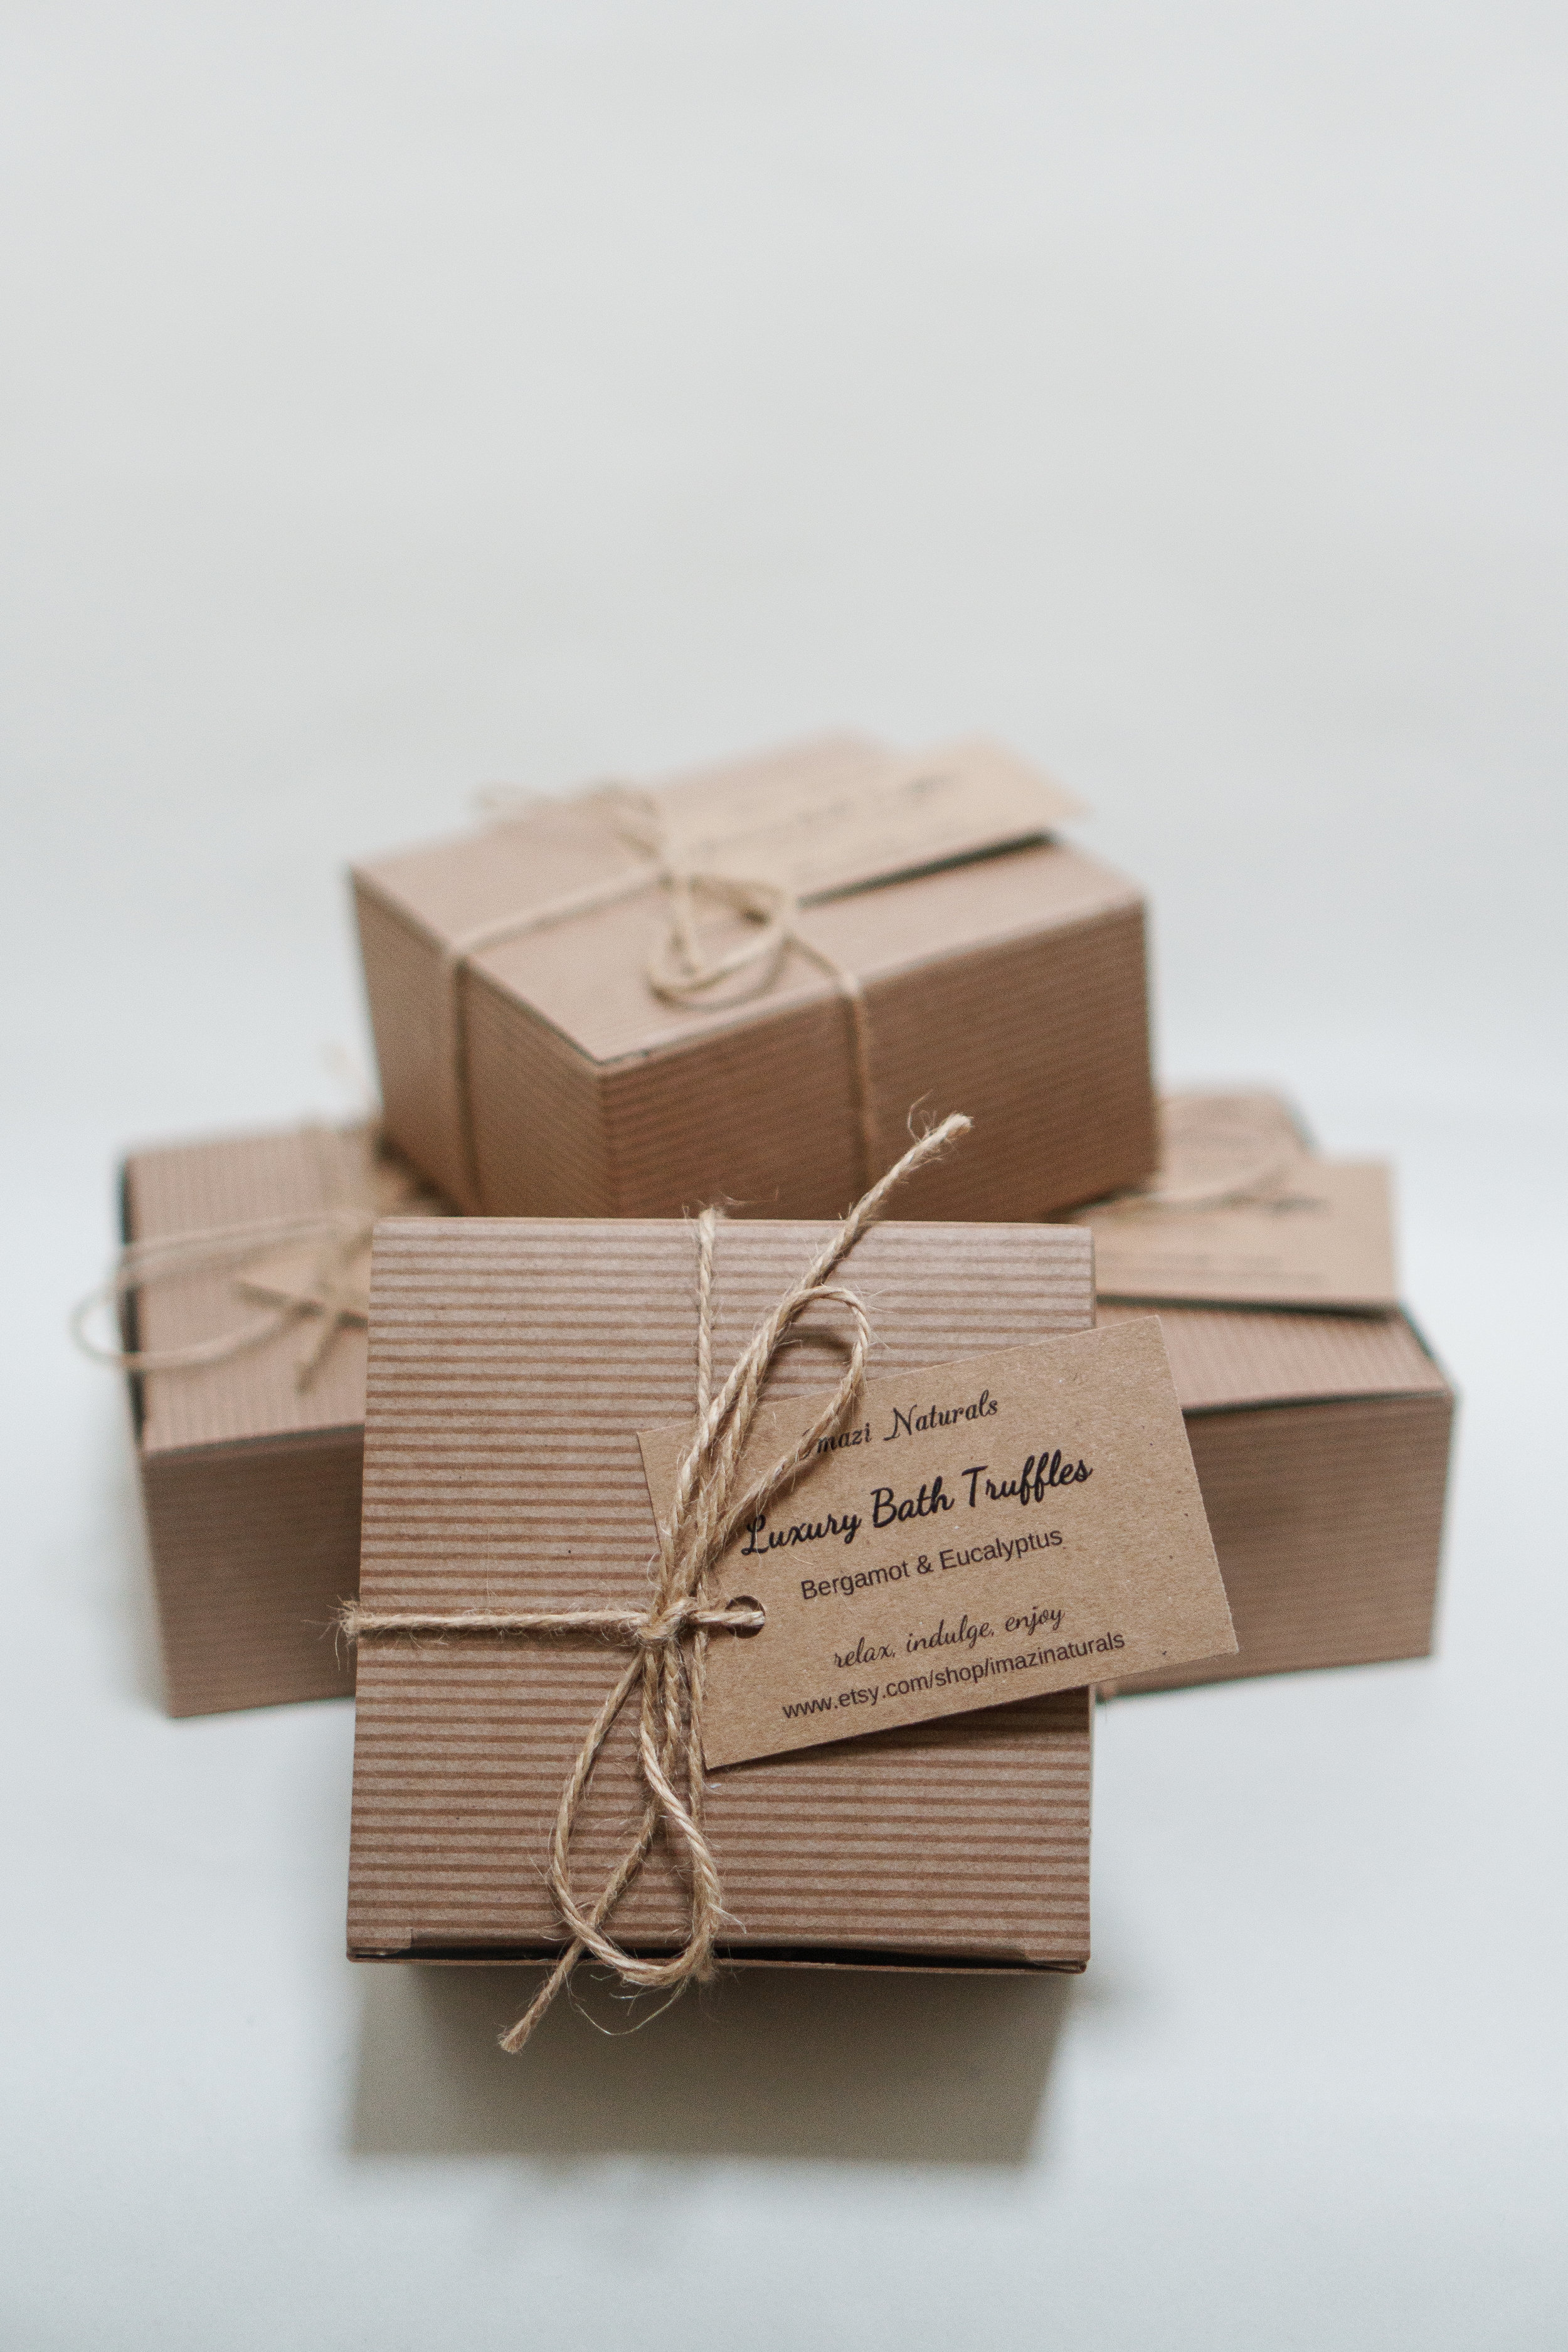 Gift Boxes - Treat yourself or someone special to one of our beautiful gift boxes